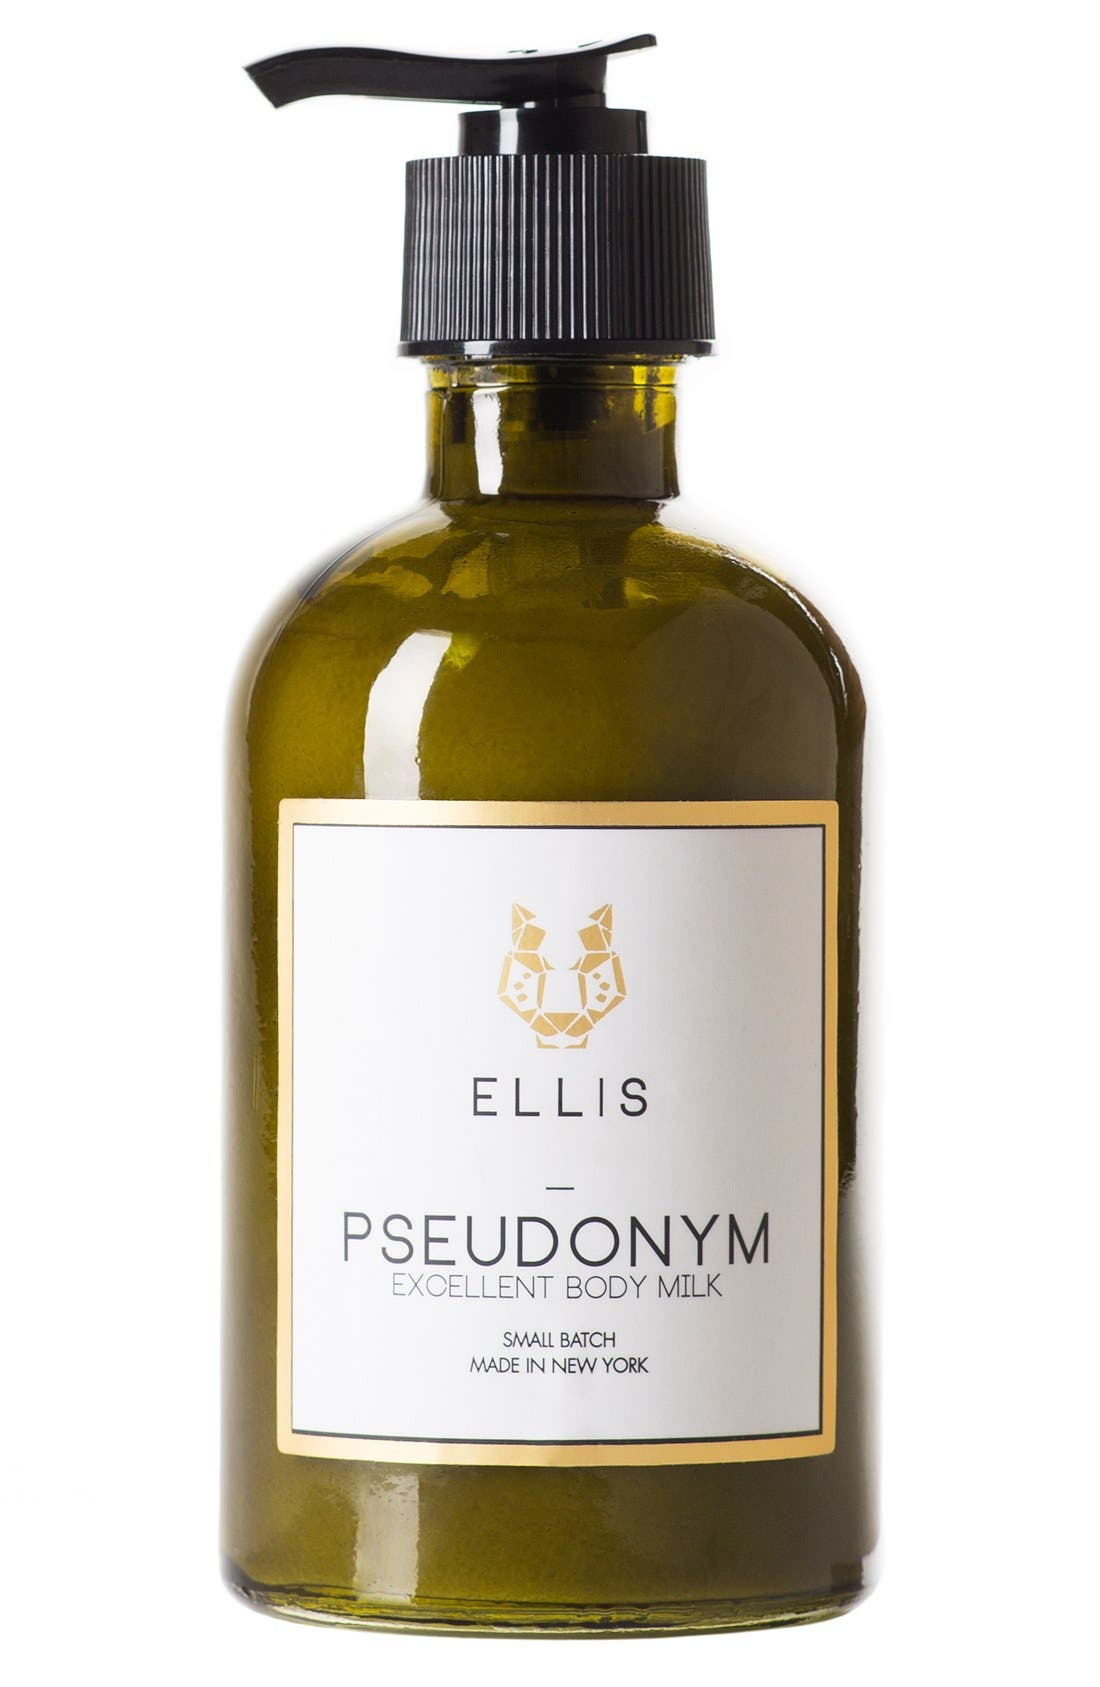 Ellis Brooklyn 'Pseudonym Excellent' Body Milk